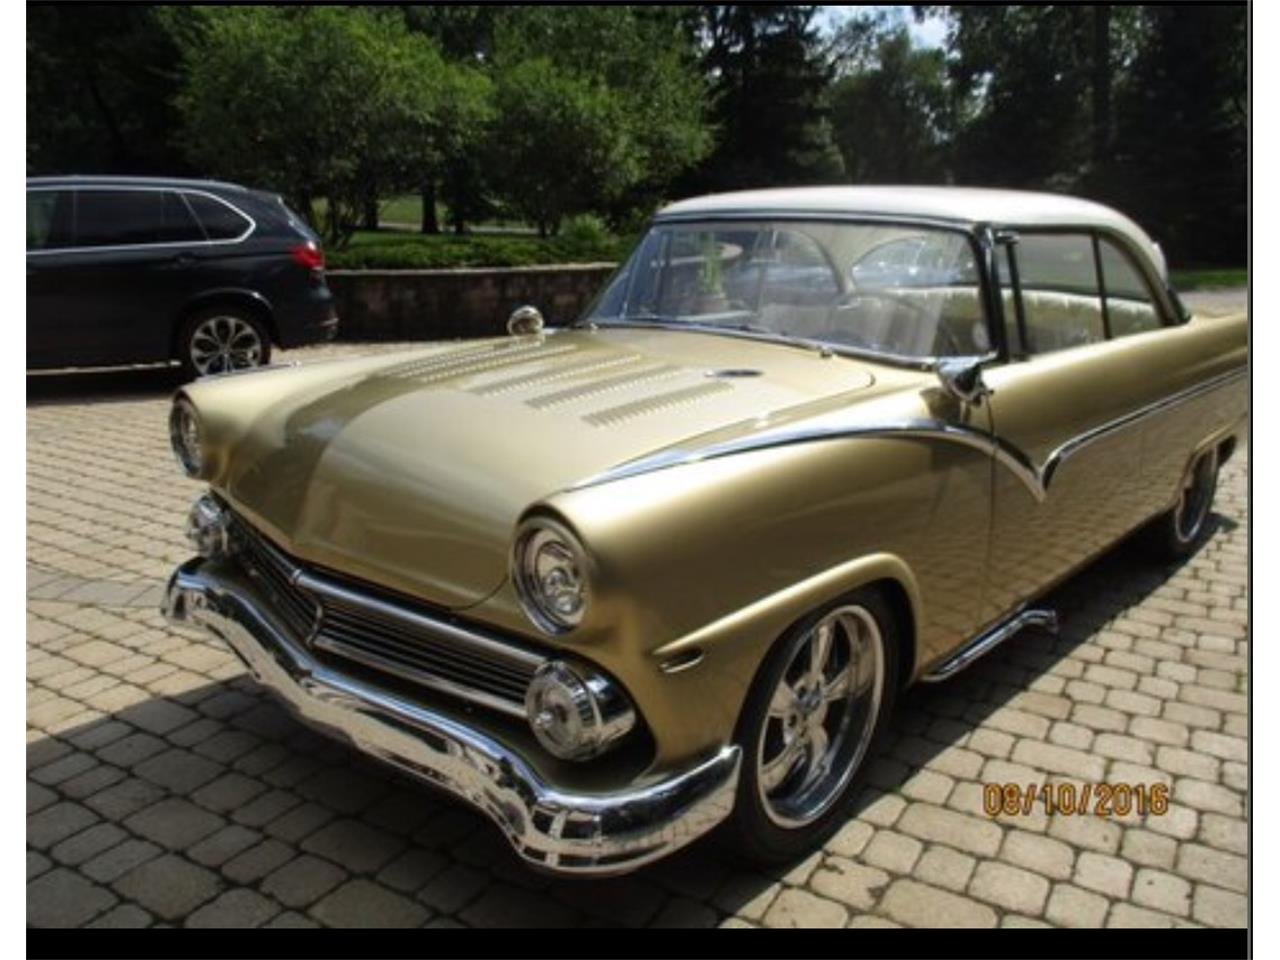 Large Picture of '55 Ford Fairlane Victoria - $75,000.00 - JKID